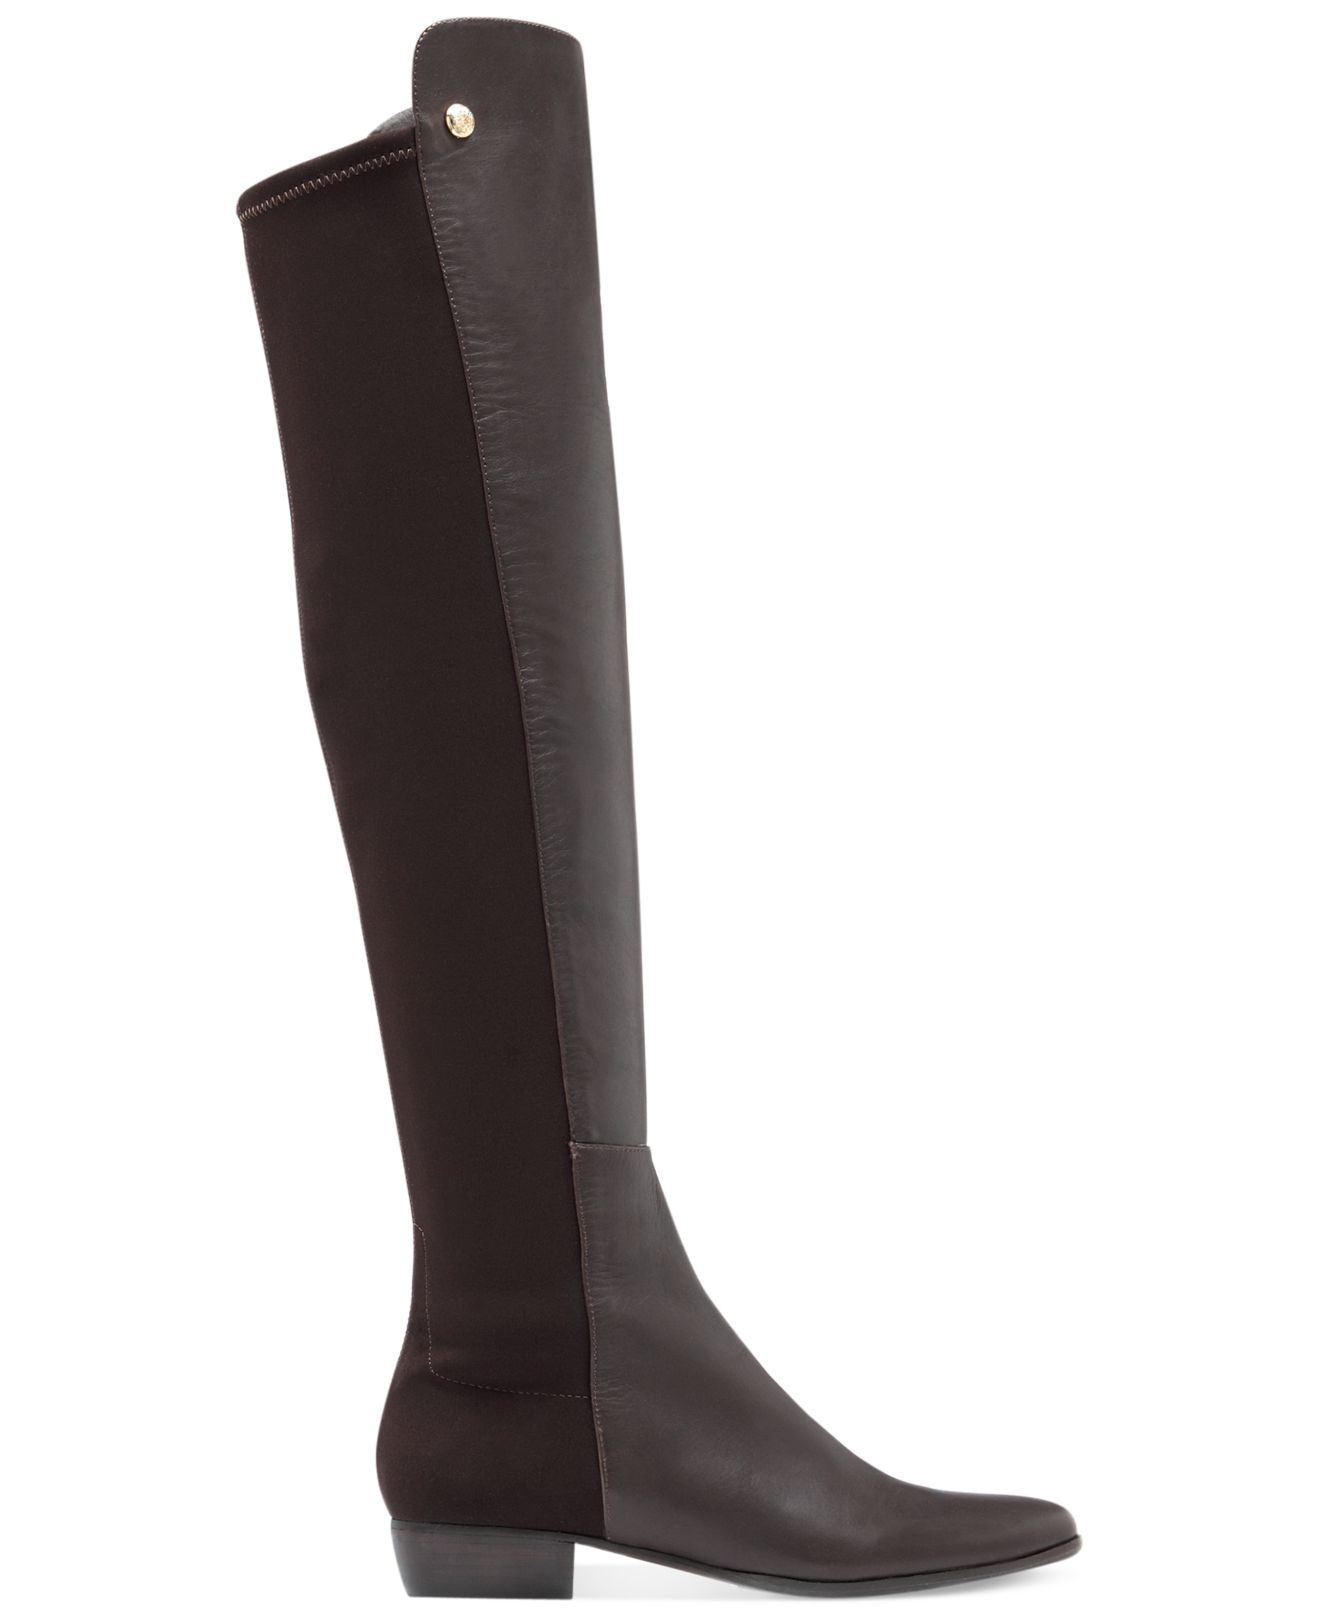 e48925fb575 Vince Camuto Brown Karita Tall Riding Boots